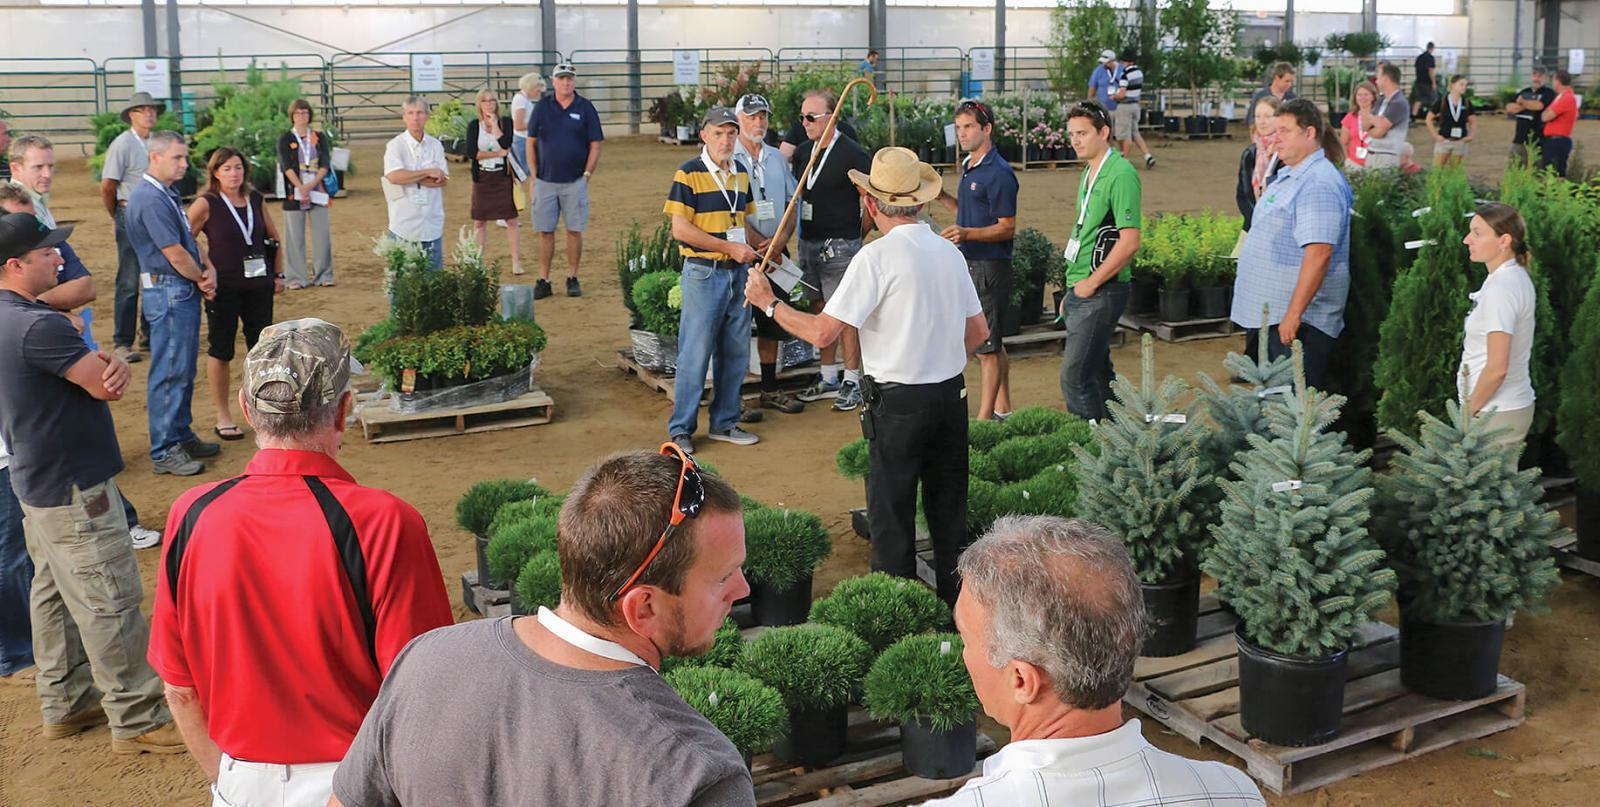 This year's Industry Auction, held as part of Thrive, offered great plant material at low prices.